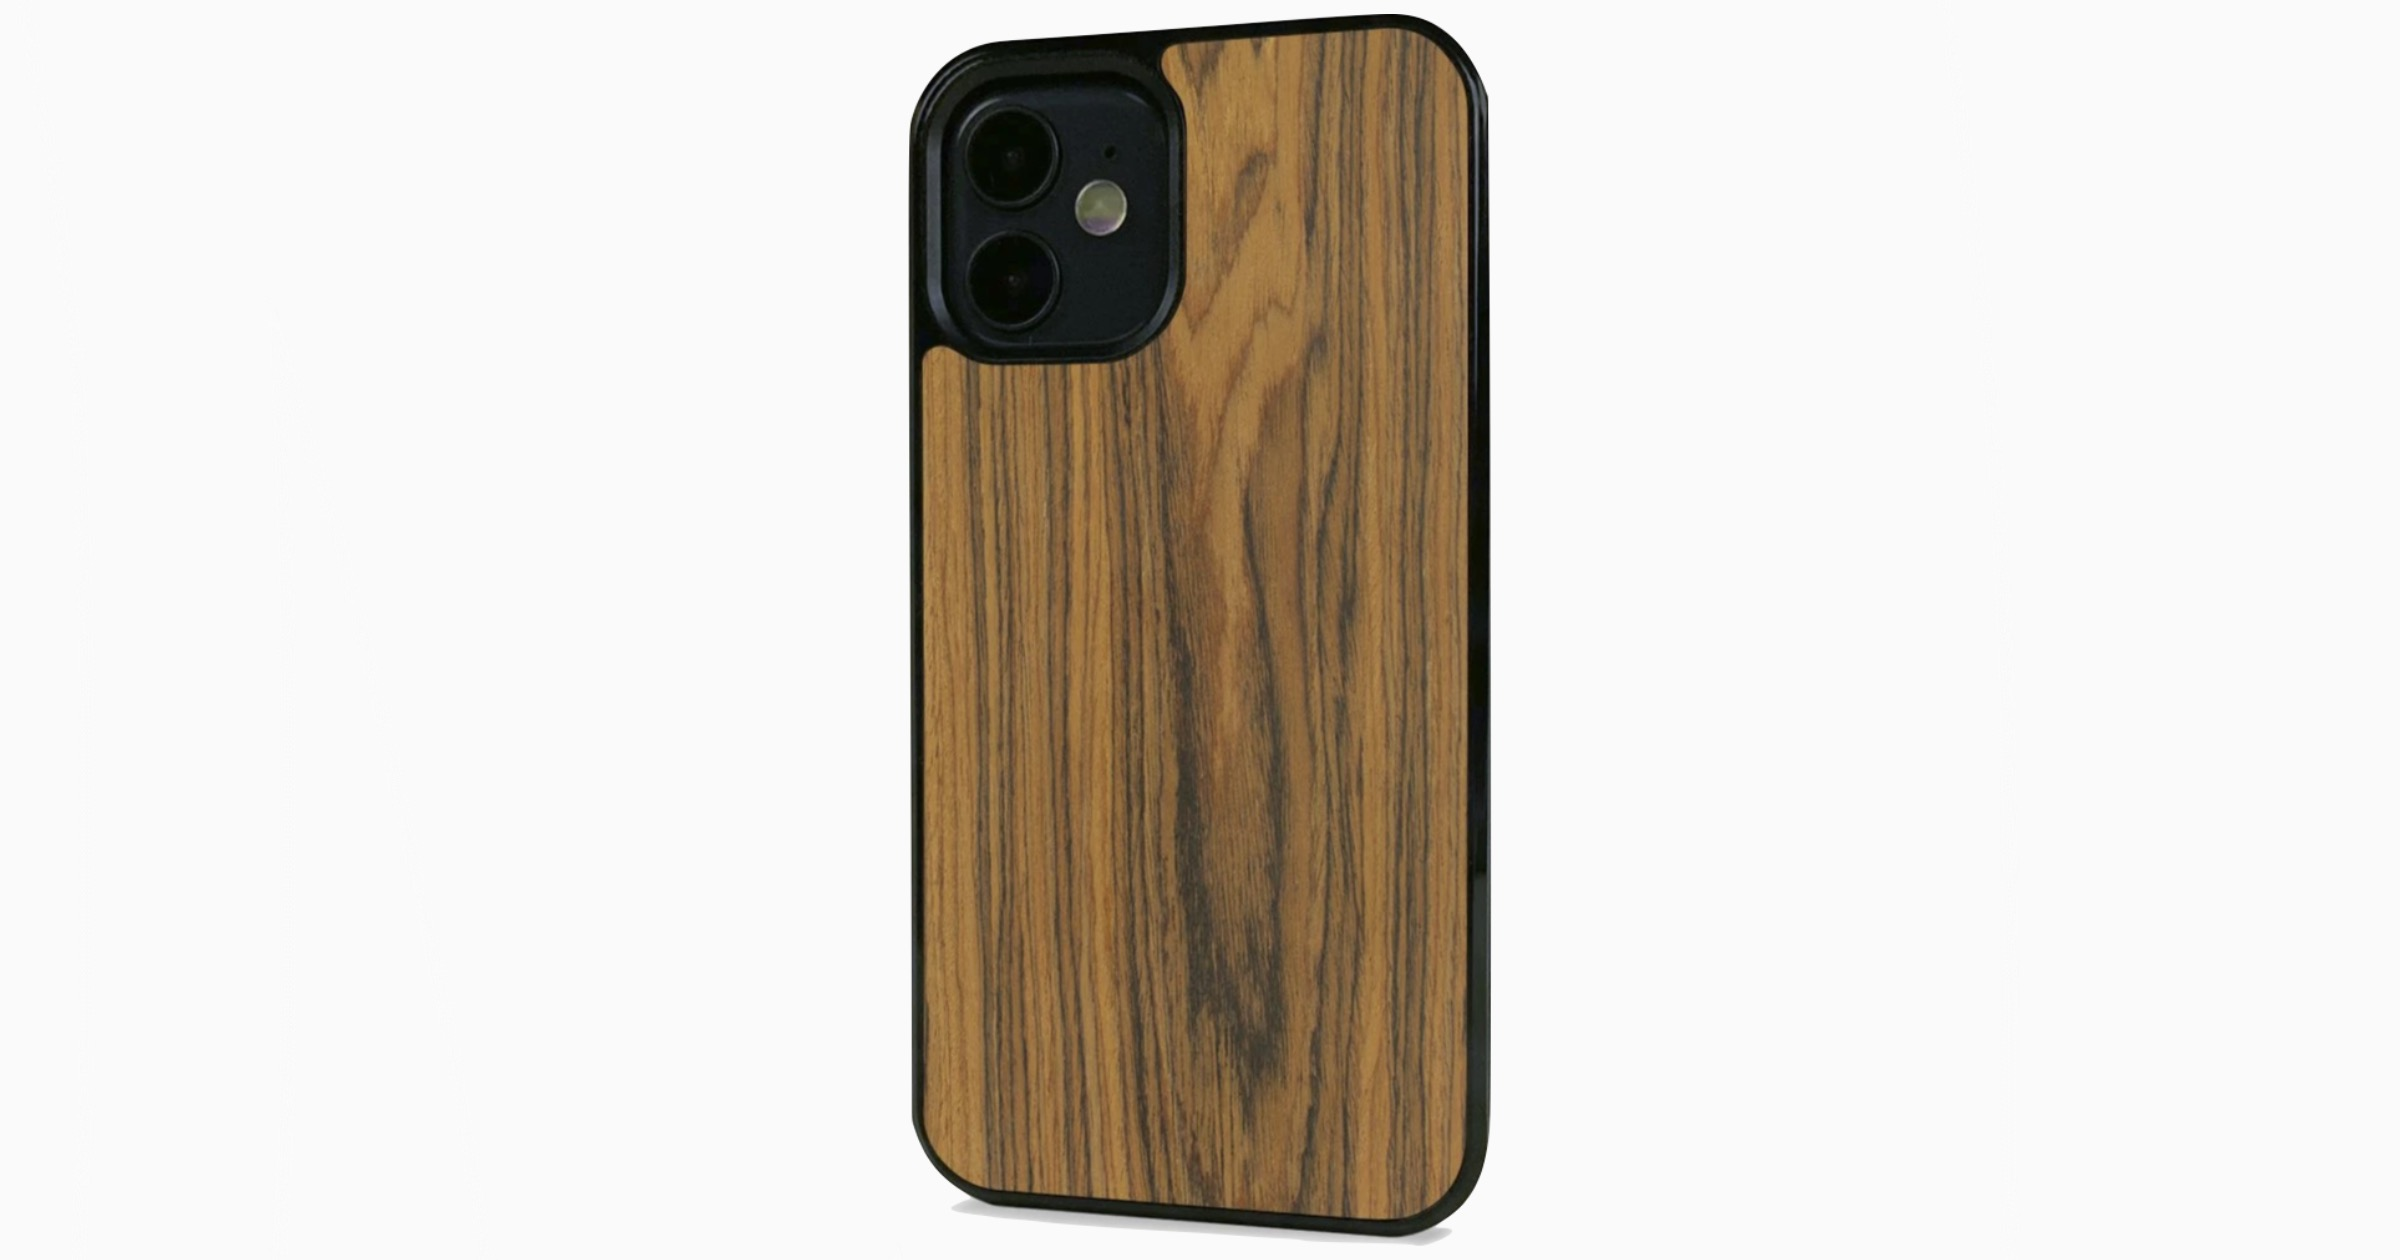 Coverup rosewood iPhone 12 case